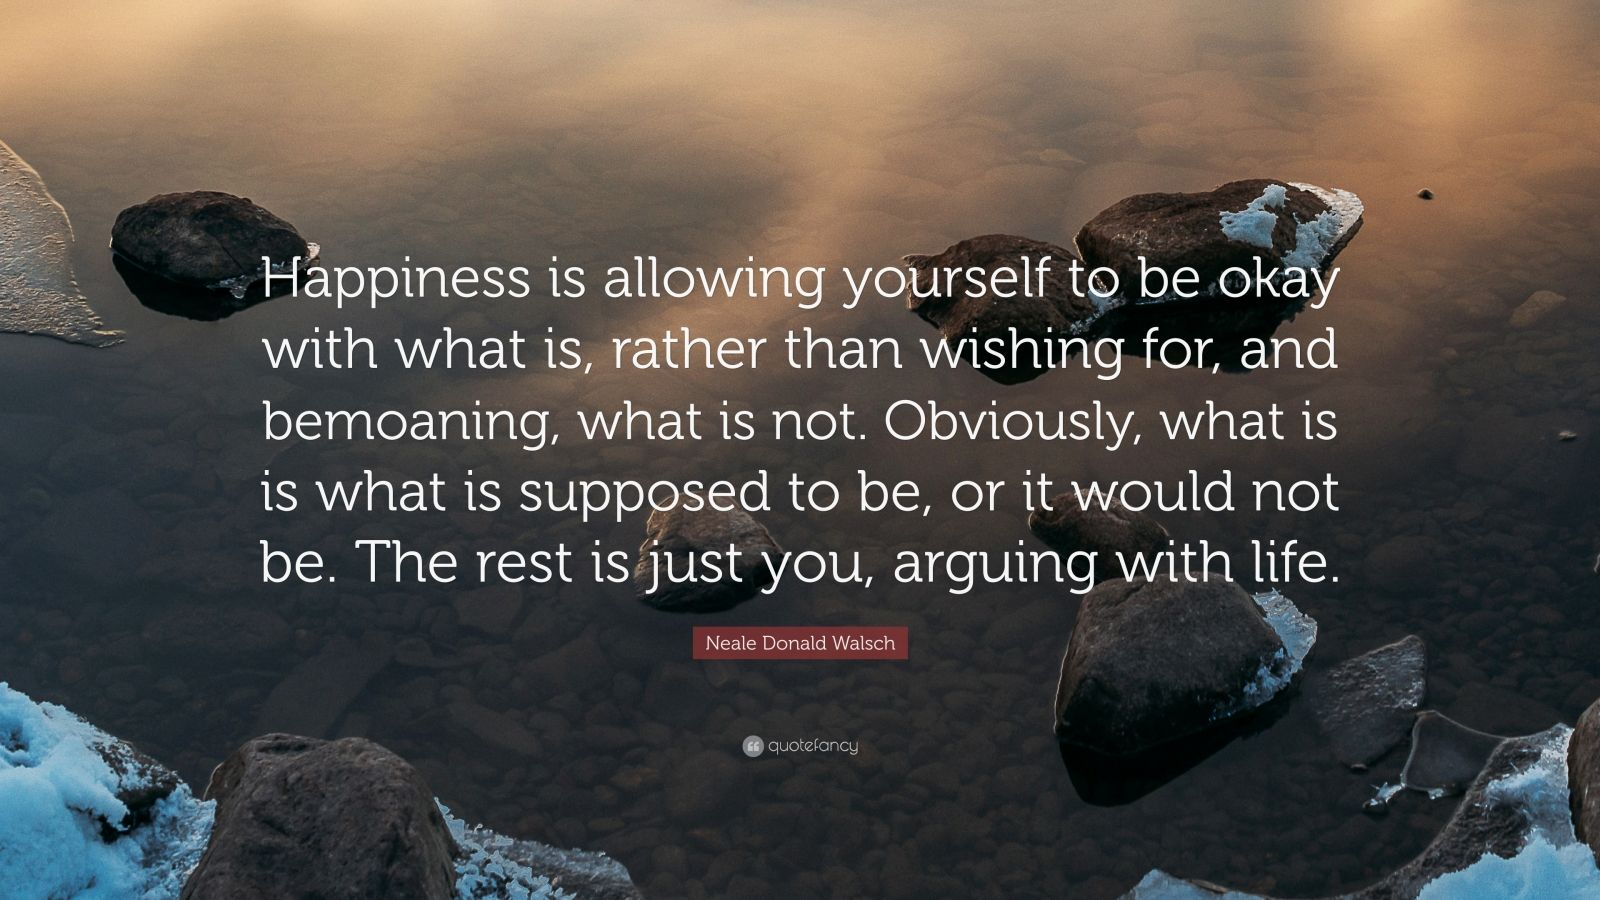 """Neale Donald Walsch Quote: """"Happiness is allowing yourself to be okay with what is, rather than wishing for, and bemoaning, what is not. Obviously, what is is what is supposed to be, or it would not be. The rest is just you, arguing with life."""""""